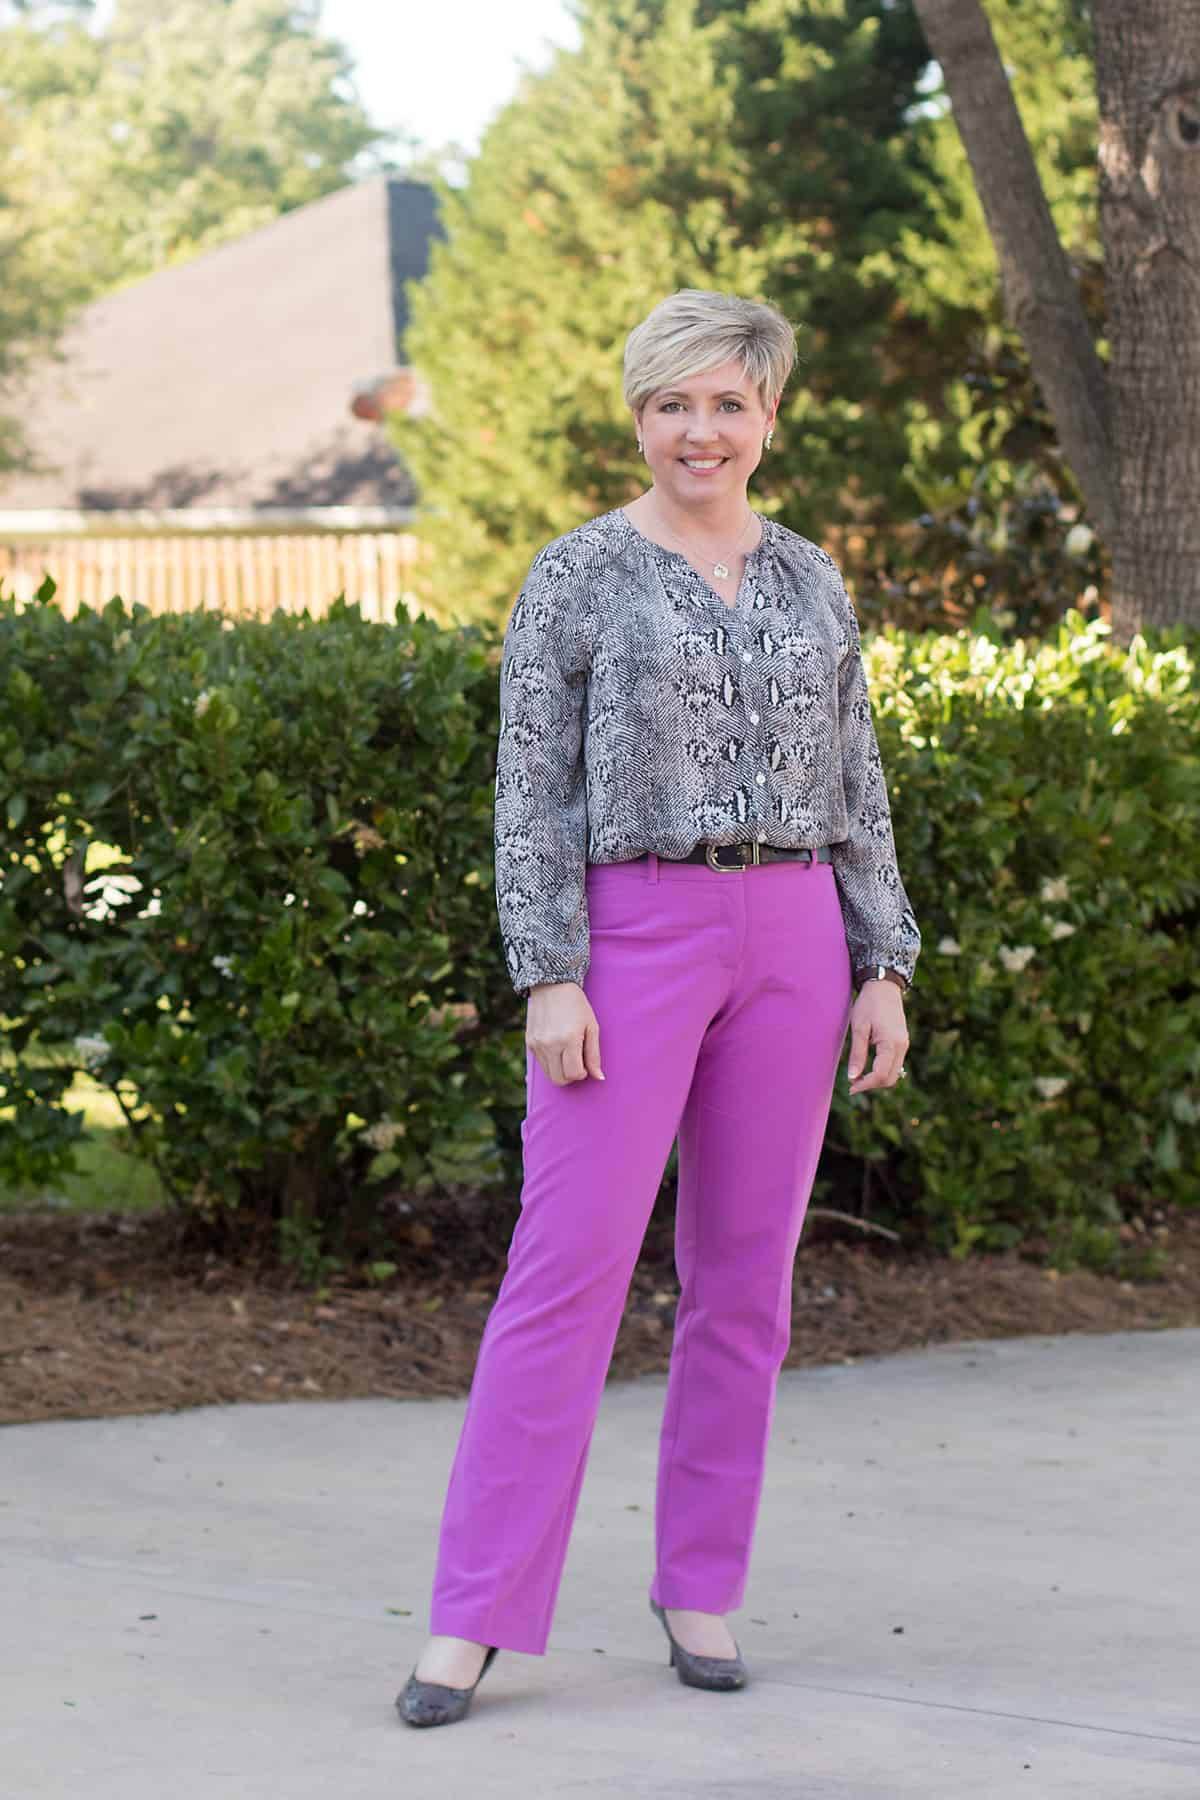 women's business casual look with amethyst orchid pants and snakeskin blouse